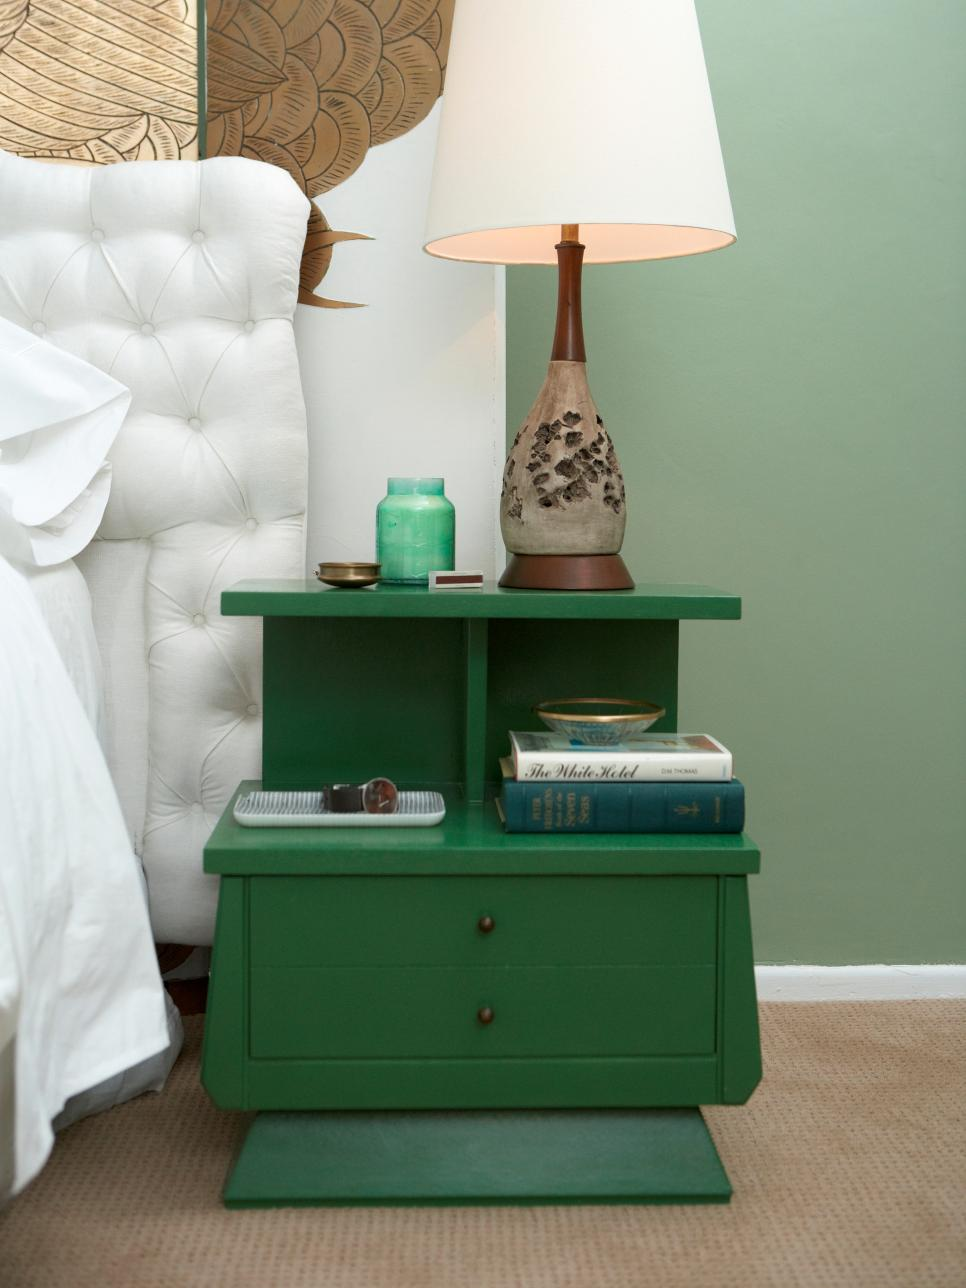 22 clever ways to repurpose furniture do it yourself for Cute nightstand ideas